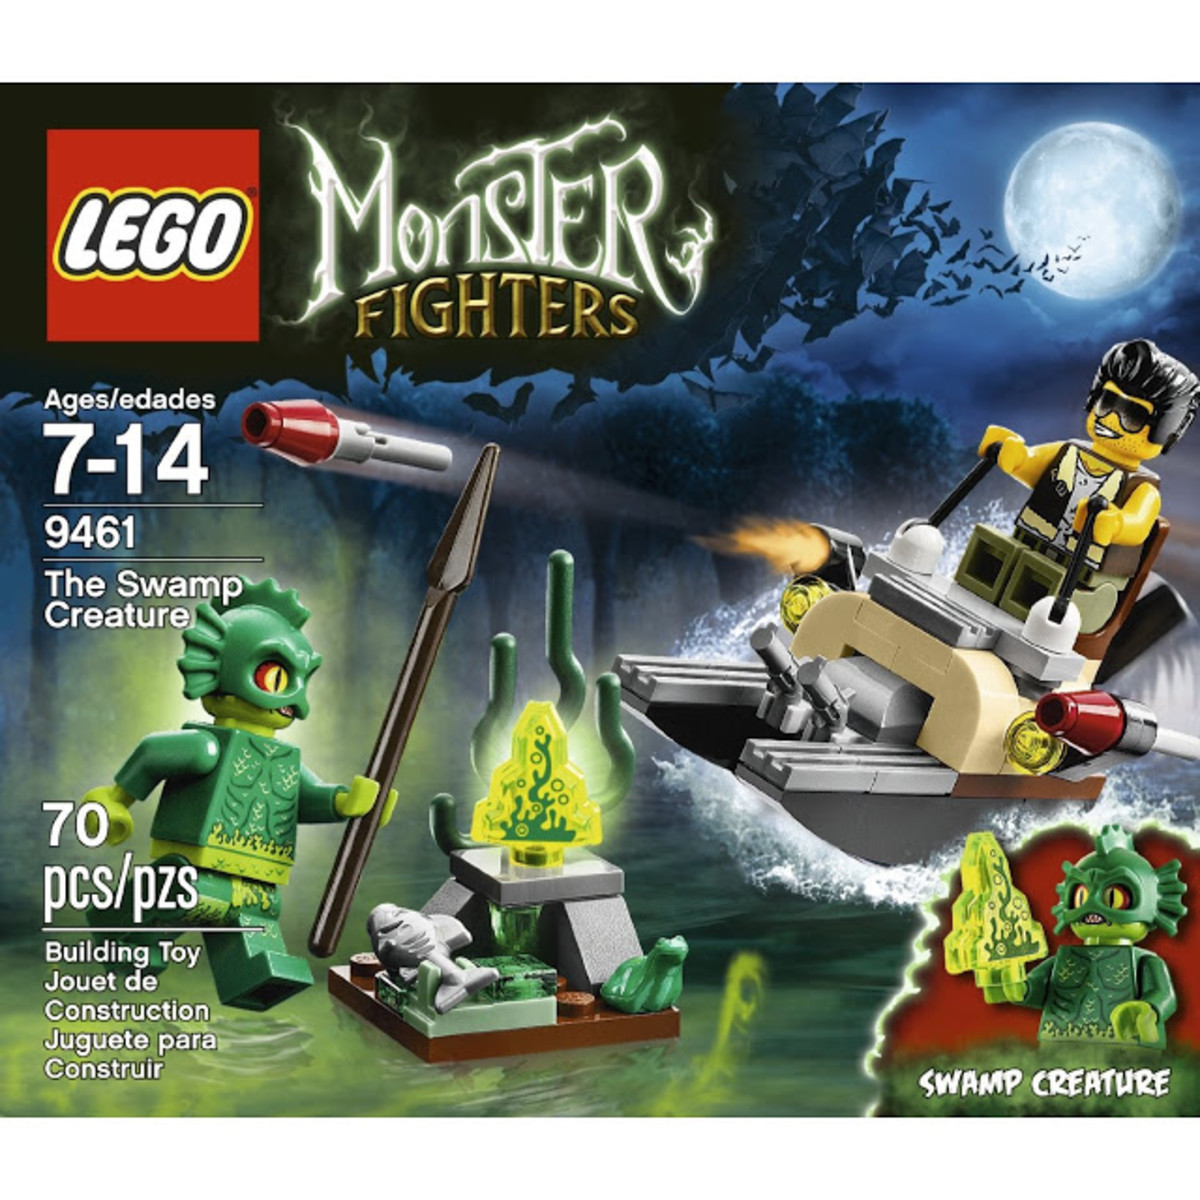 LEGO Monster Fighters The Swamp Creature 9461 Box